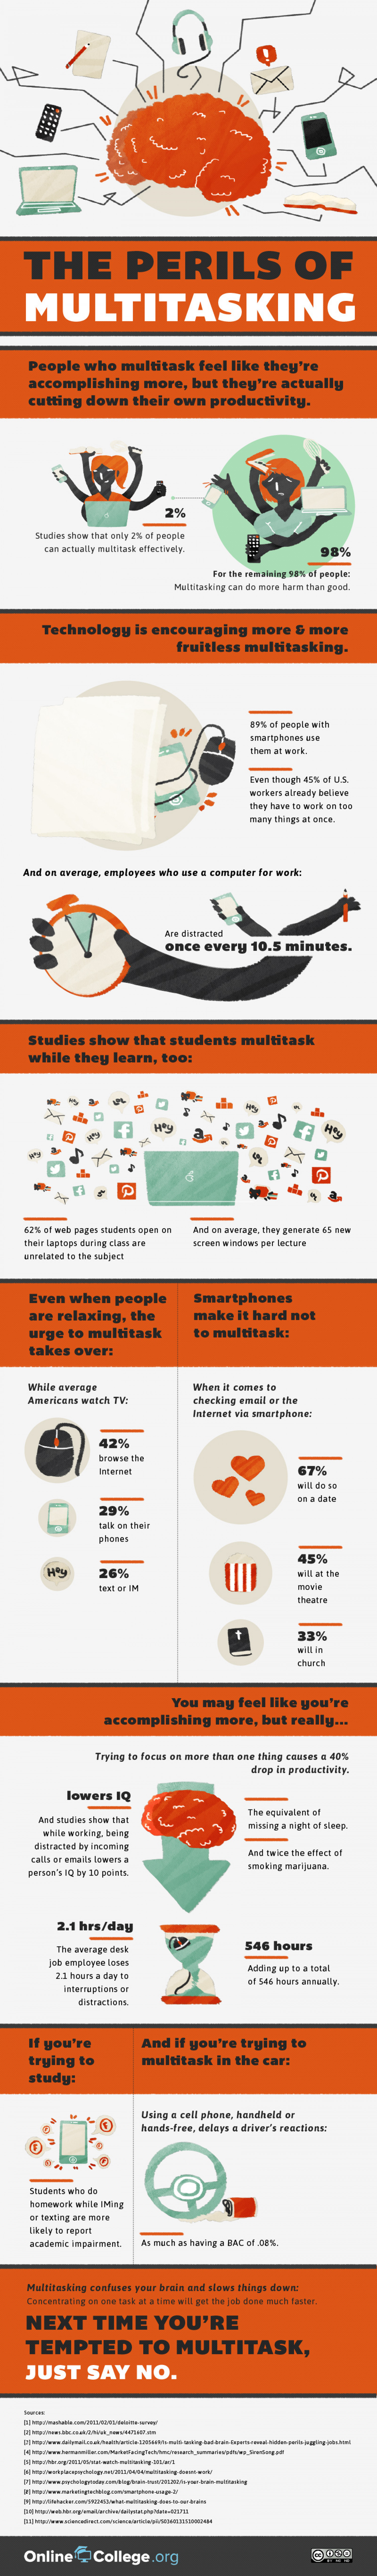 Do humans really have the ability to multitask? Infographic